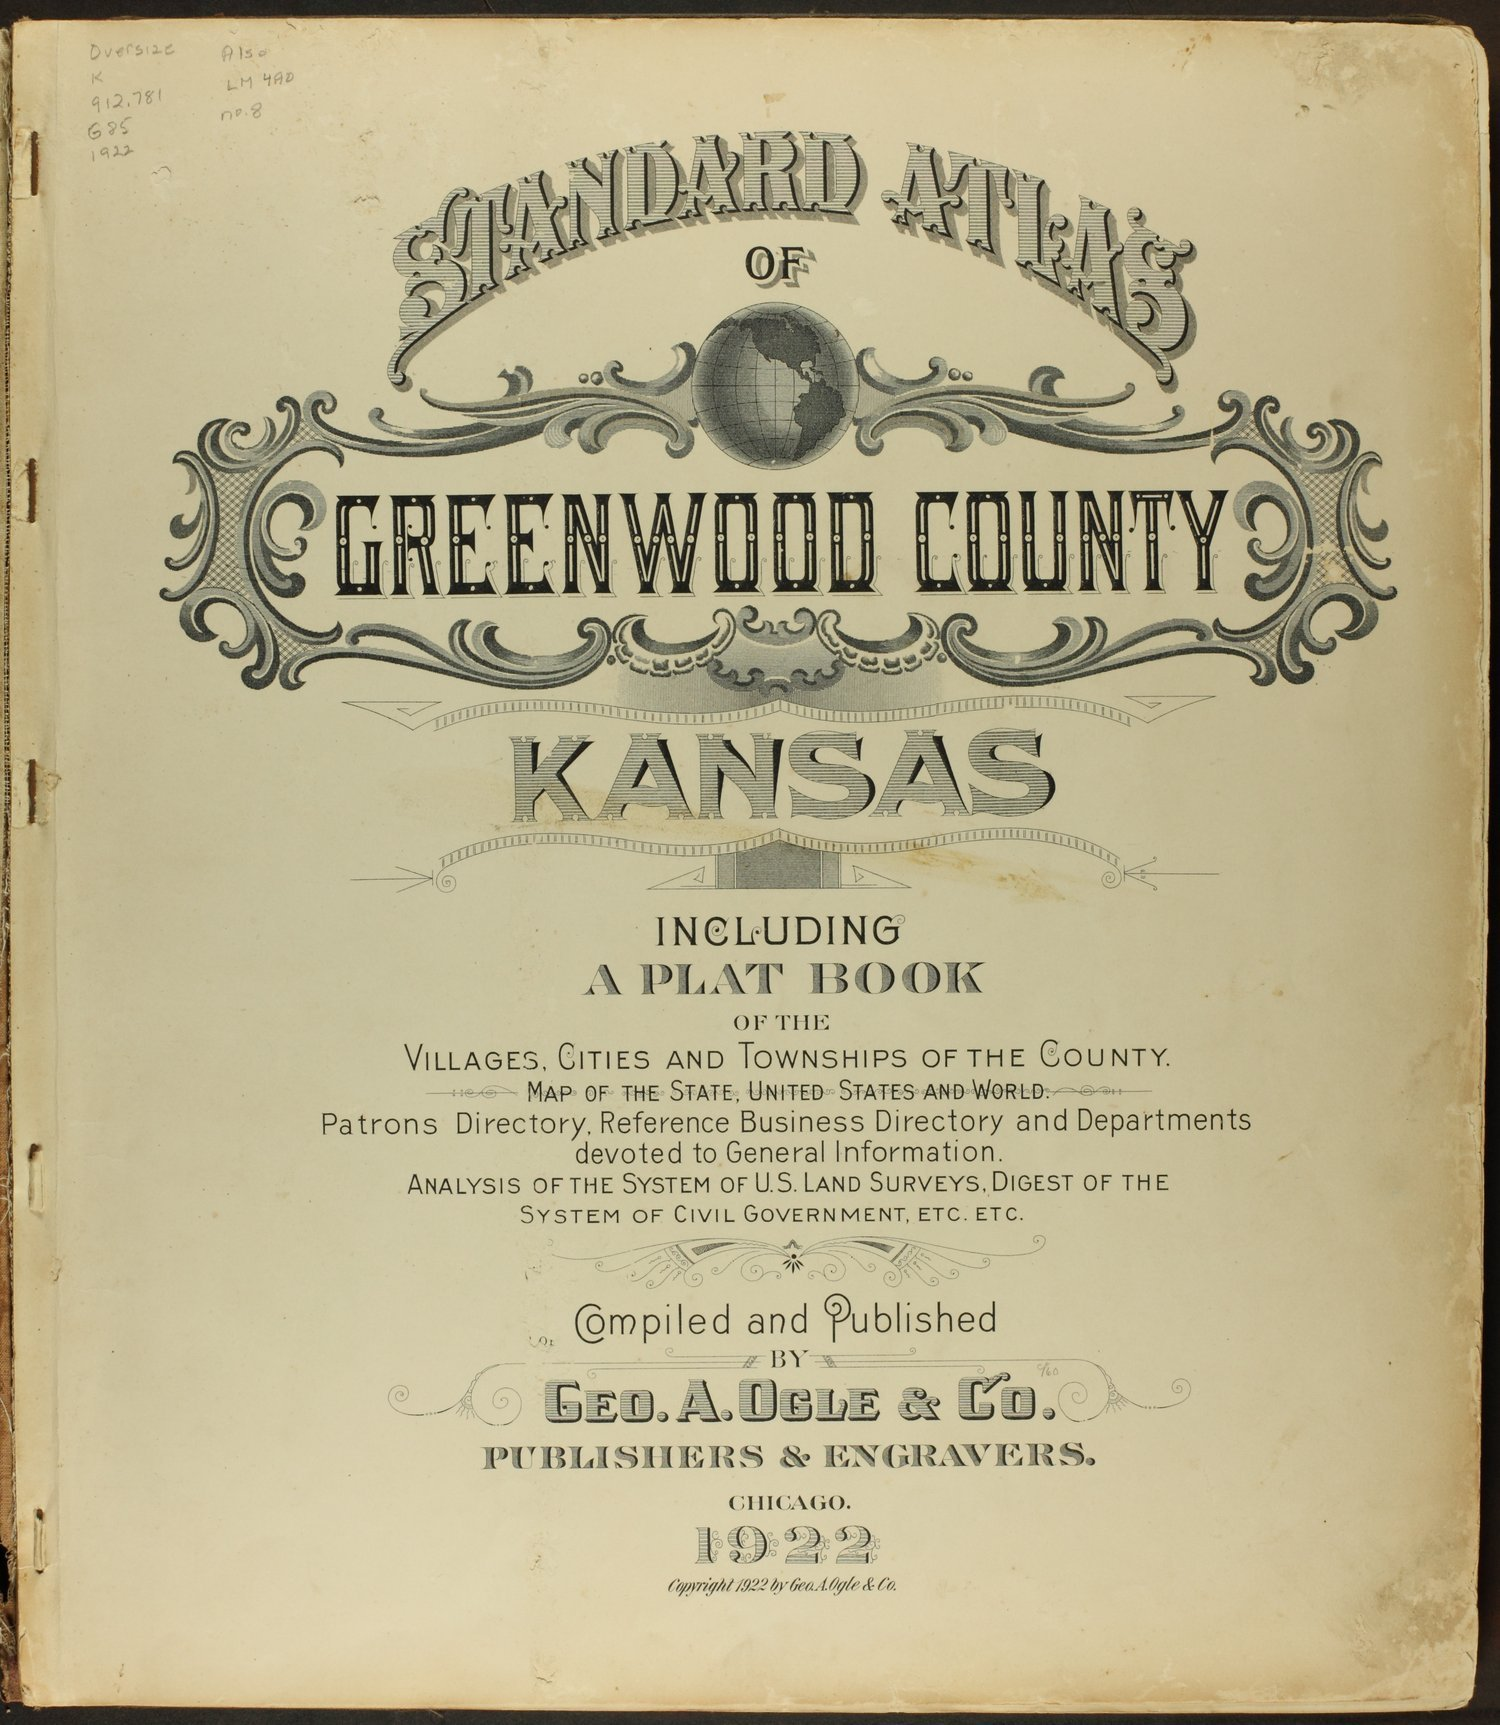 Standard atlas of Greenwood County, Kansas - Title Page